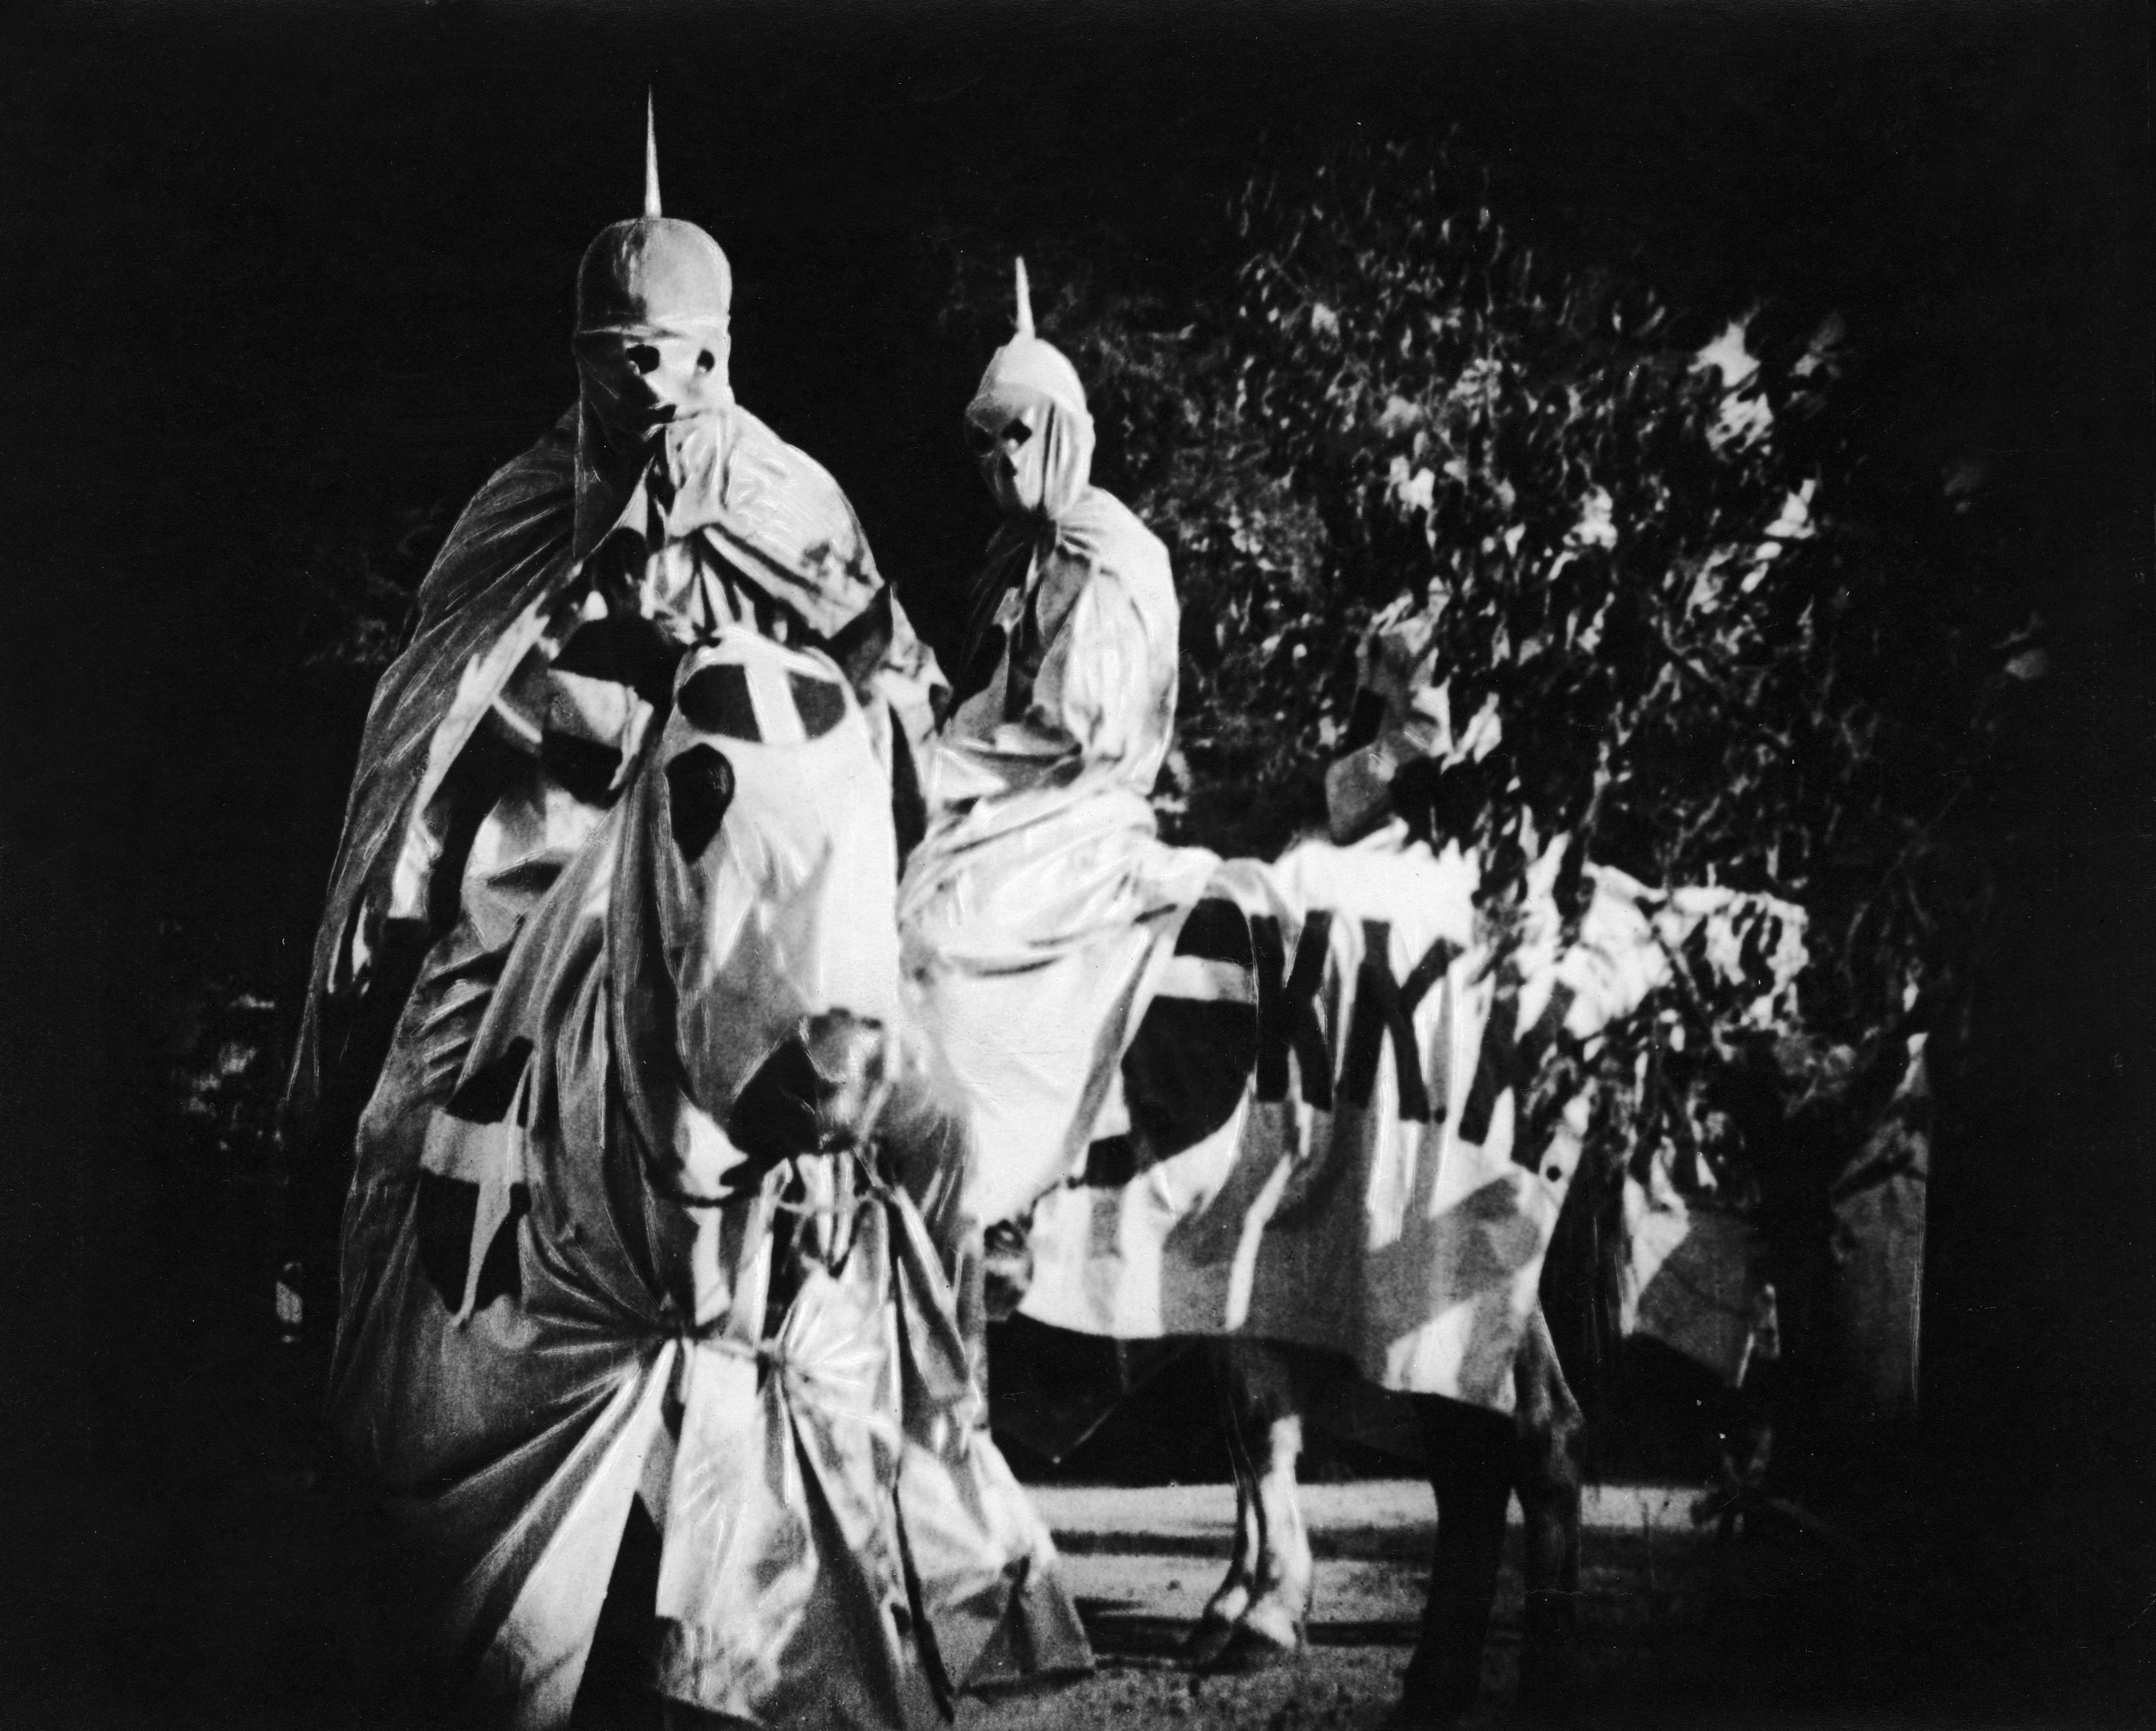 Actors costumed in the full regalia of the Ku Klux Klan ride on horses at night in a still from the 'The Birth of a Nation,' directed by D. W. Griffith, California, 1914.